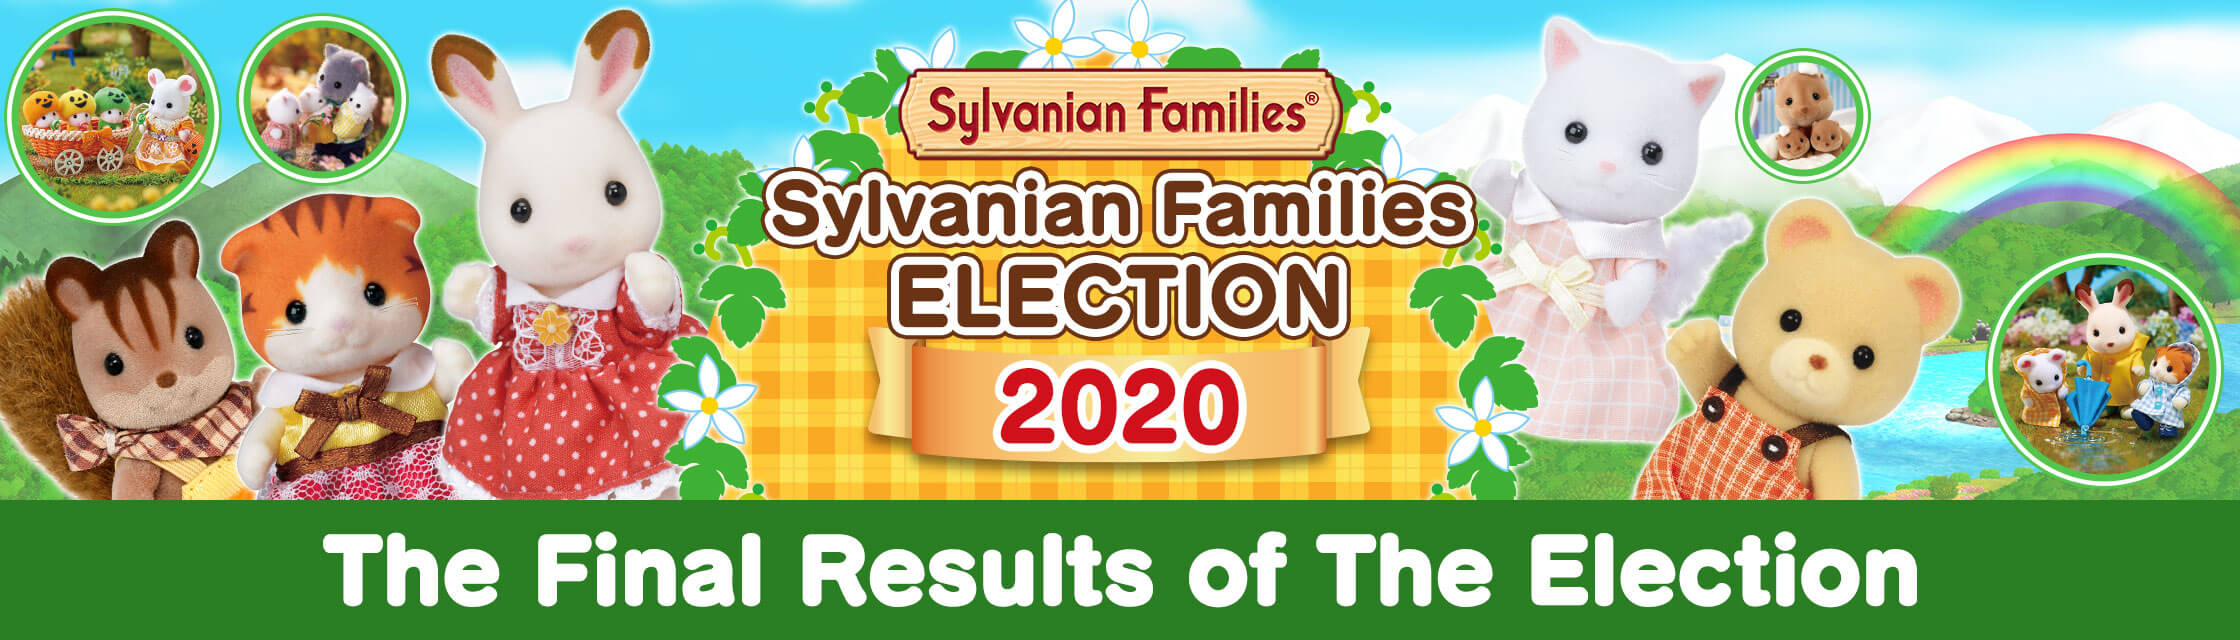 Sylvanian Families ELECTION